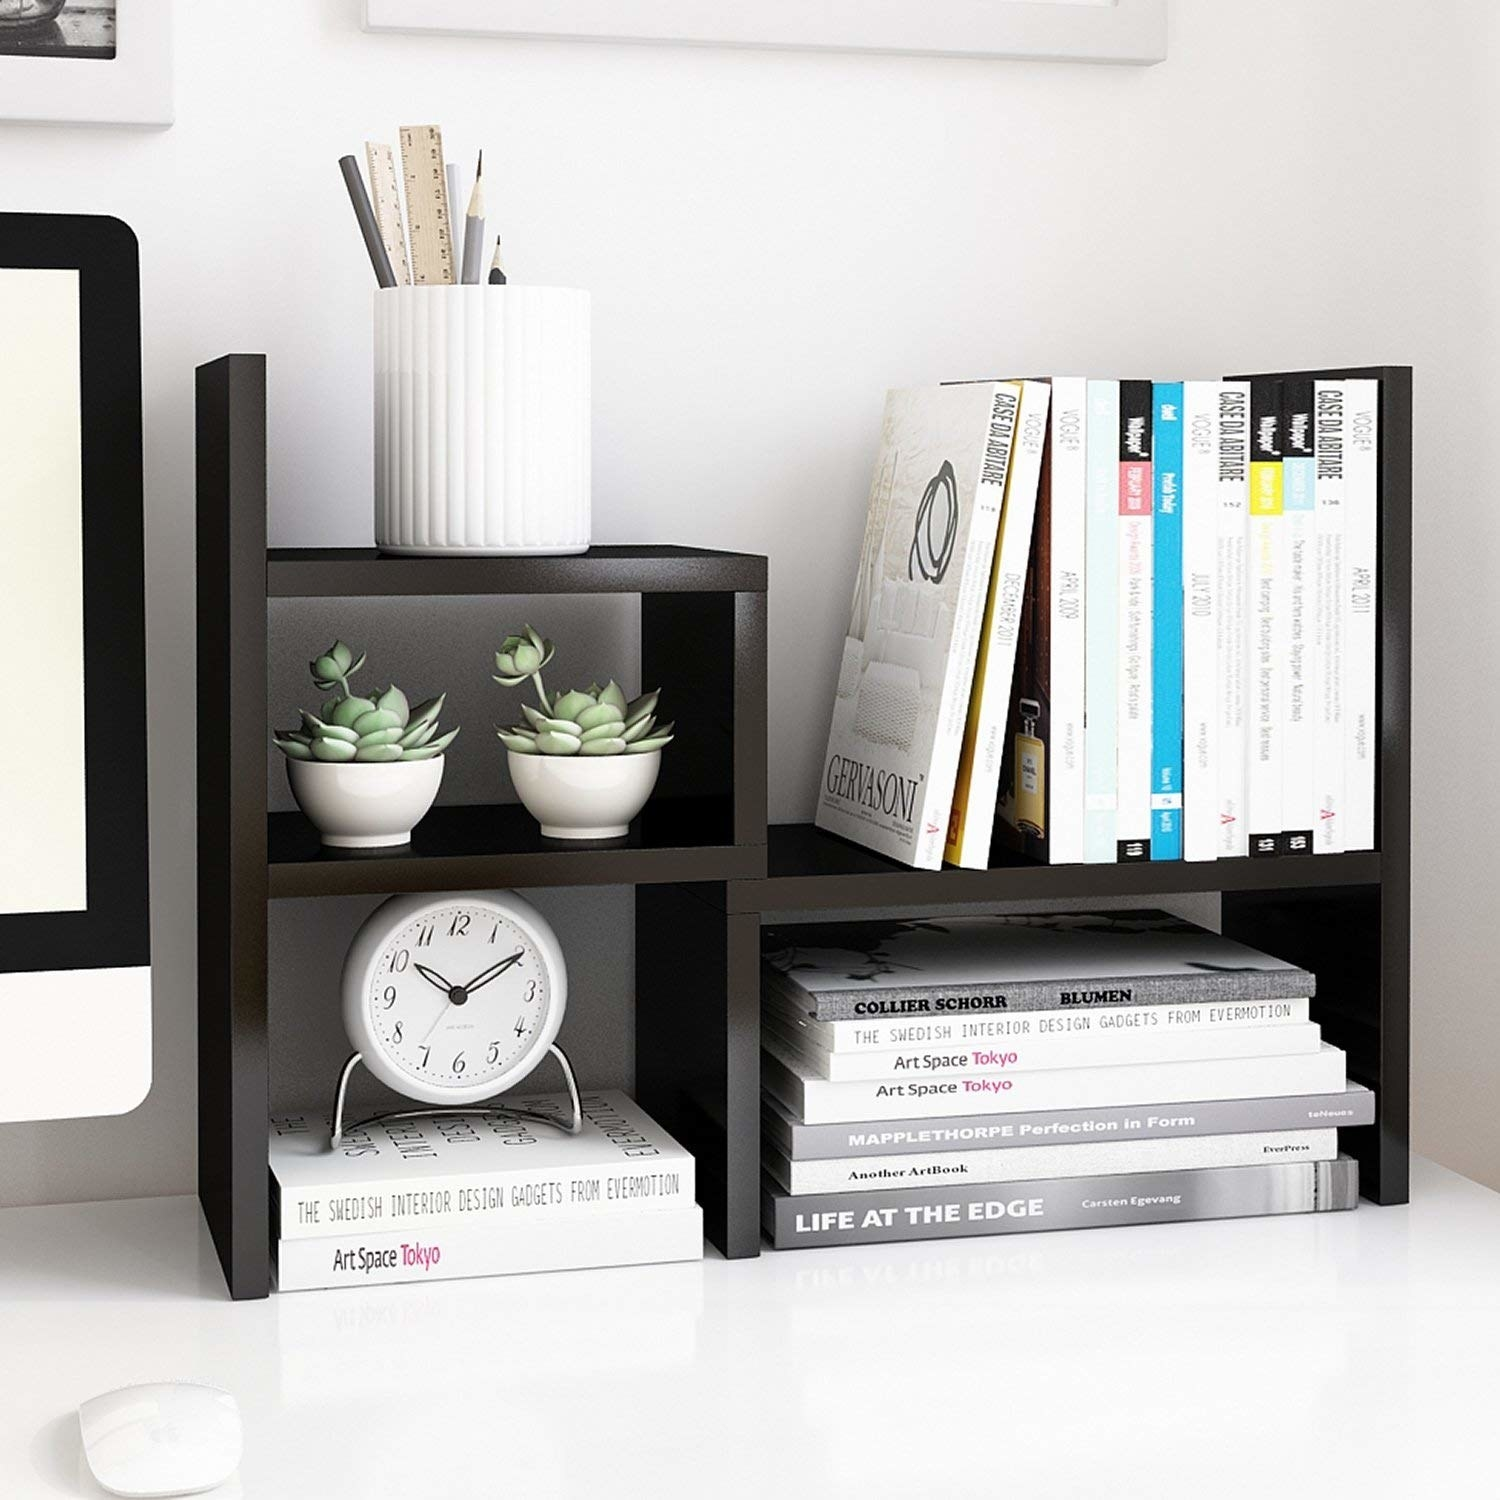 The asymmetric, rectangular-shelved unit in black, set up on a desk holding books, a pencil cup, succulents, and a clock